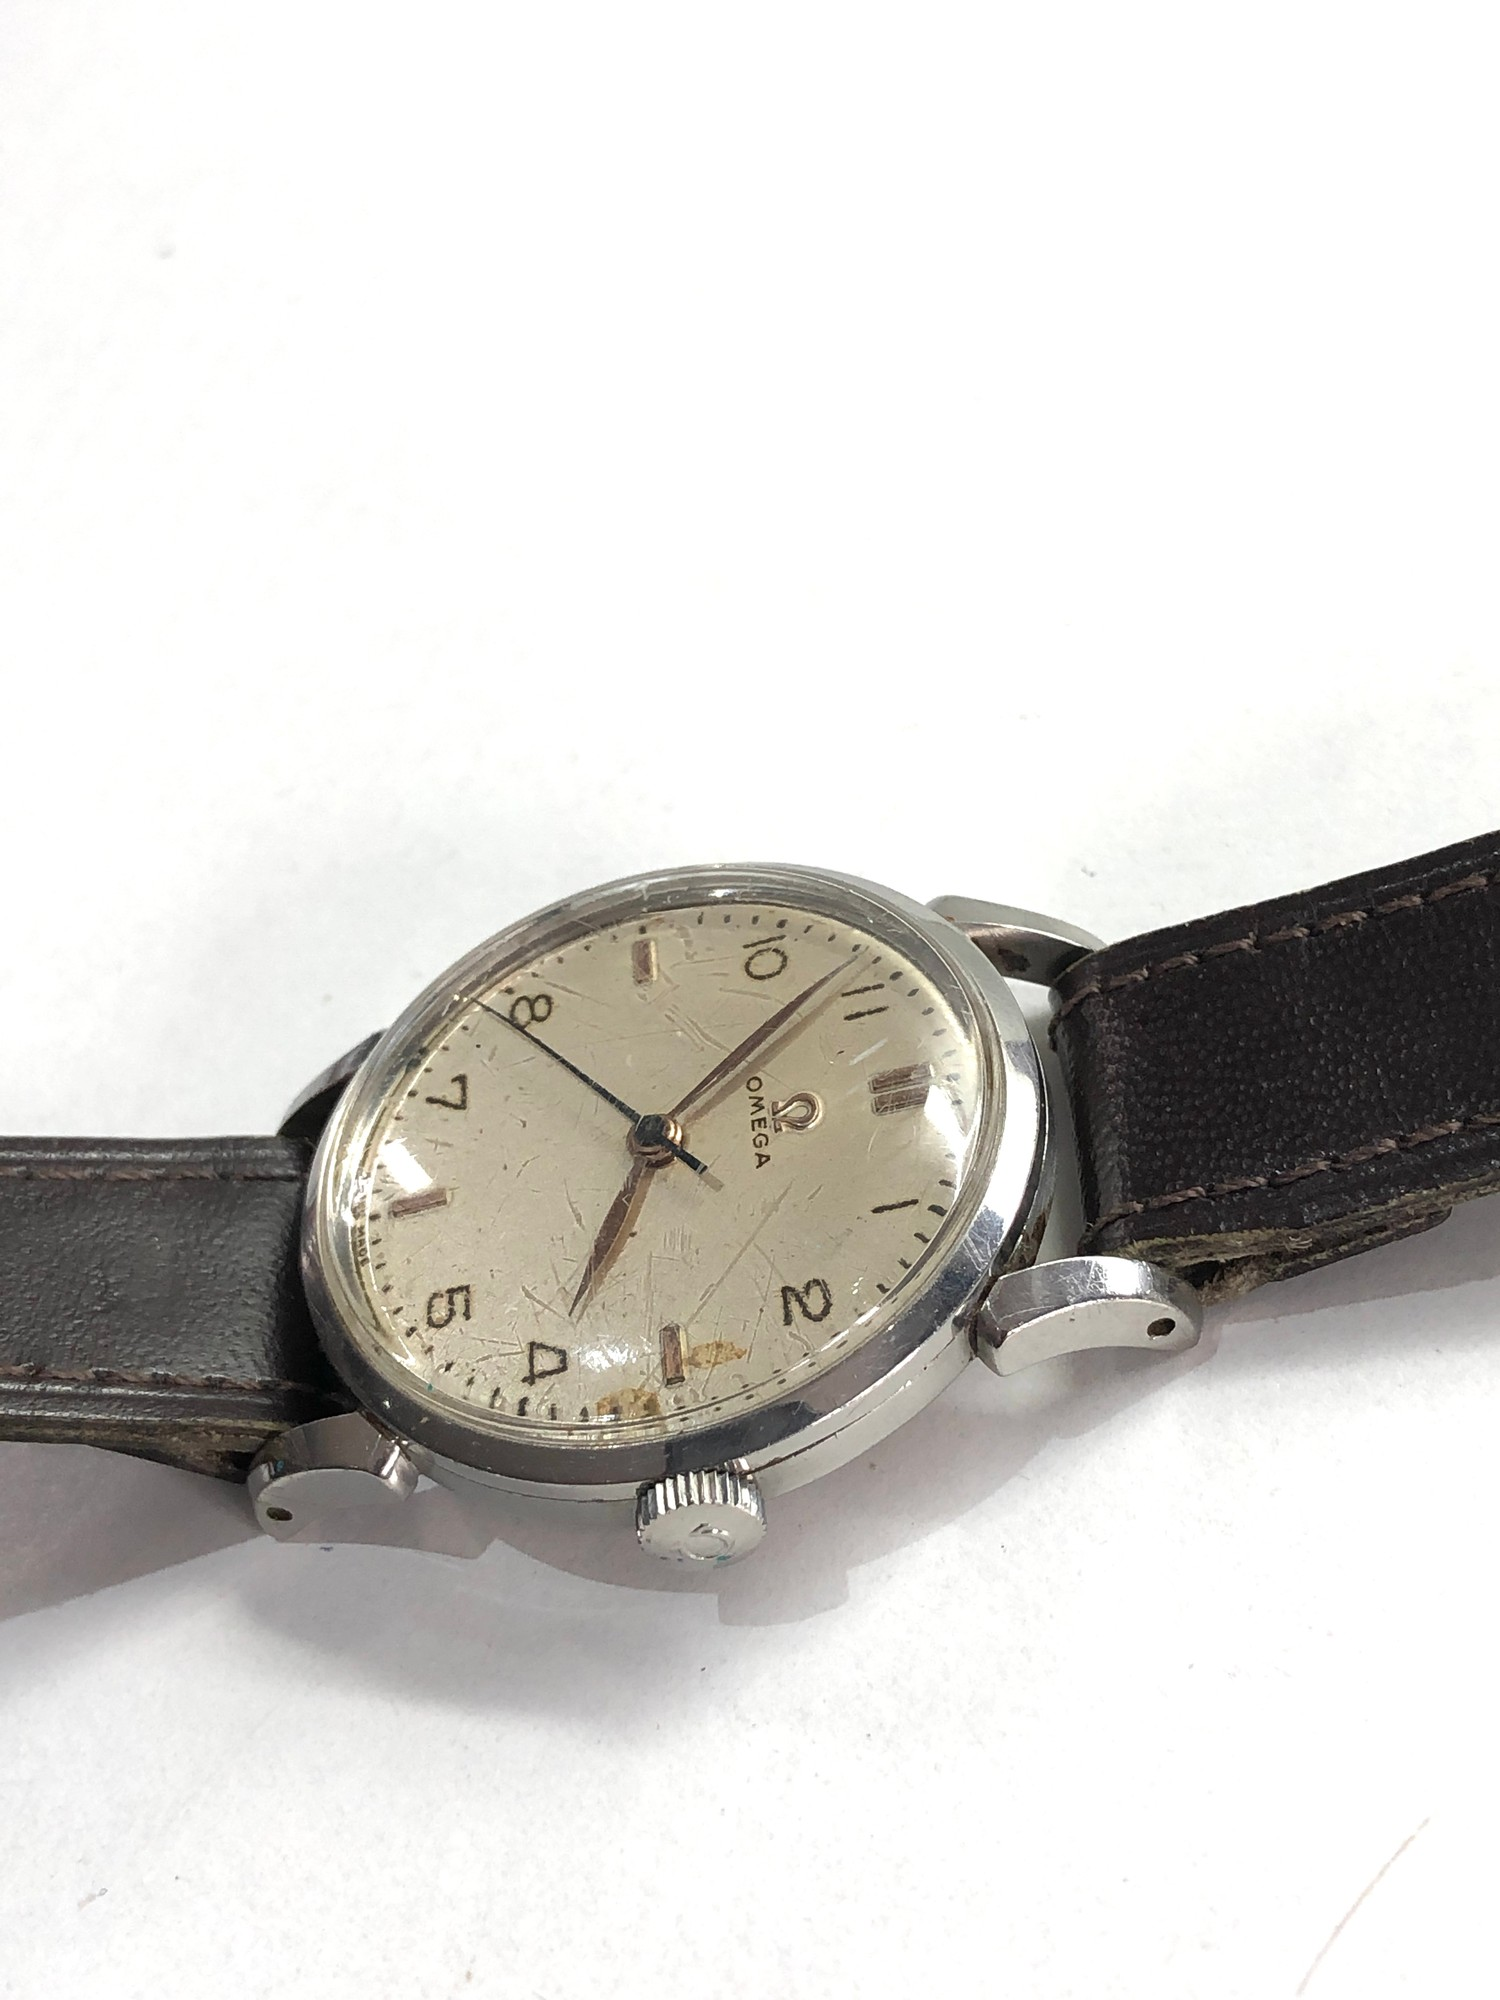 Vintage gents omega wristwatch hand wind in working order but no warranty given - Image 3 of 4